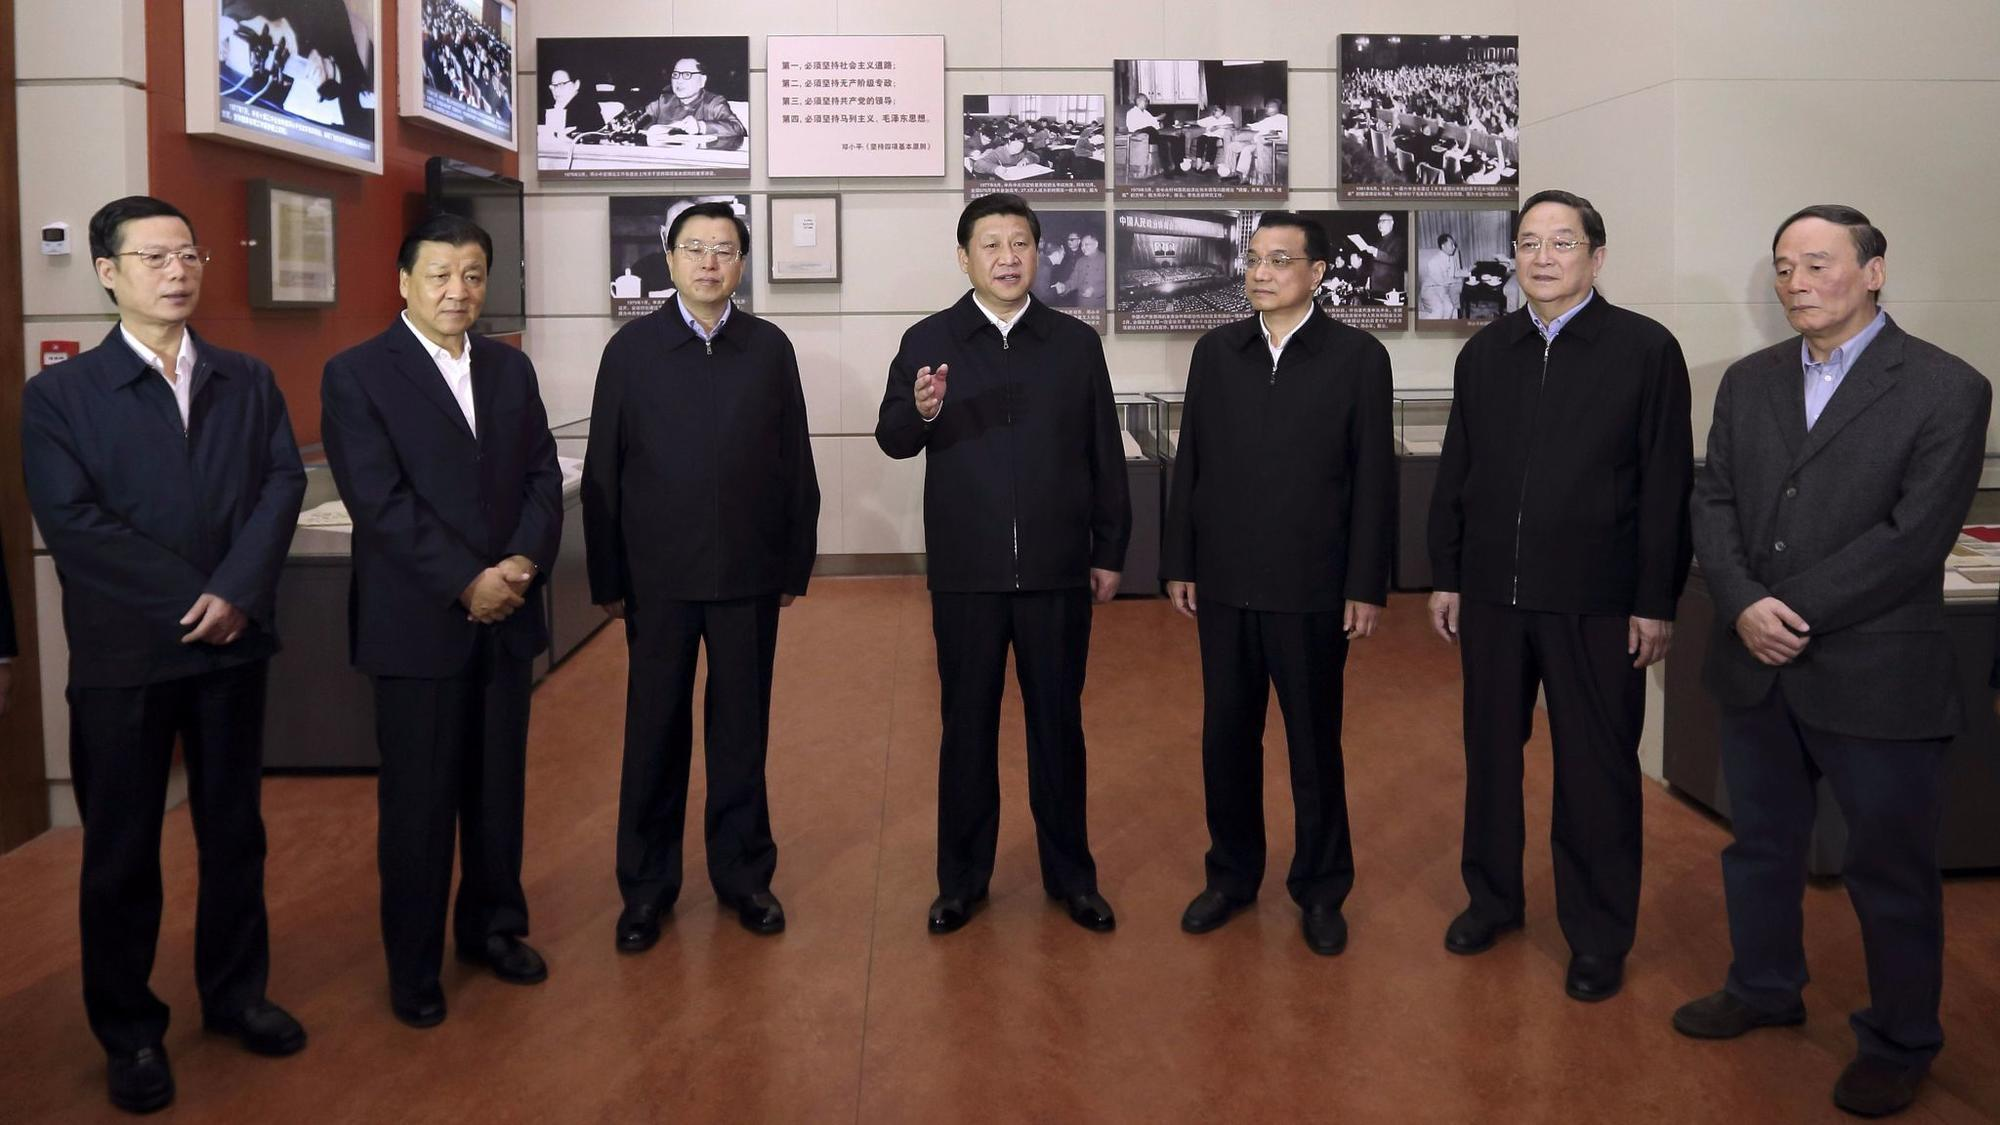 """chinas century of humiliation And so began china's """"century of national humiliation"""" until the birth of the people's republic in 1949 as for australia,."""